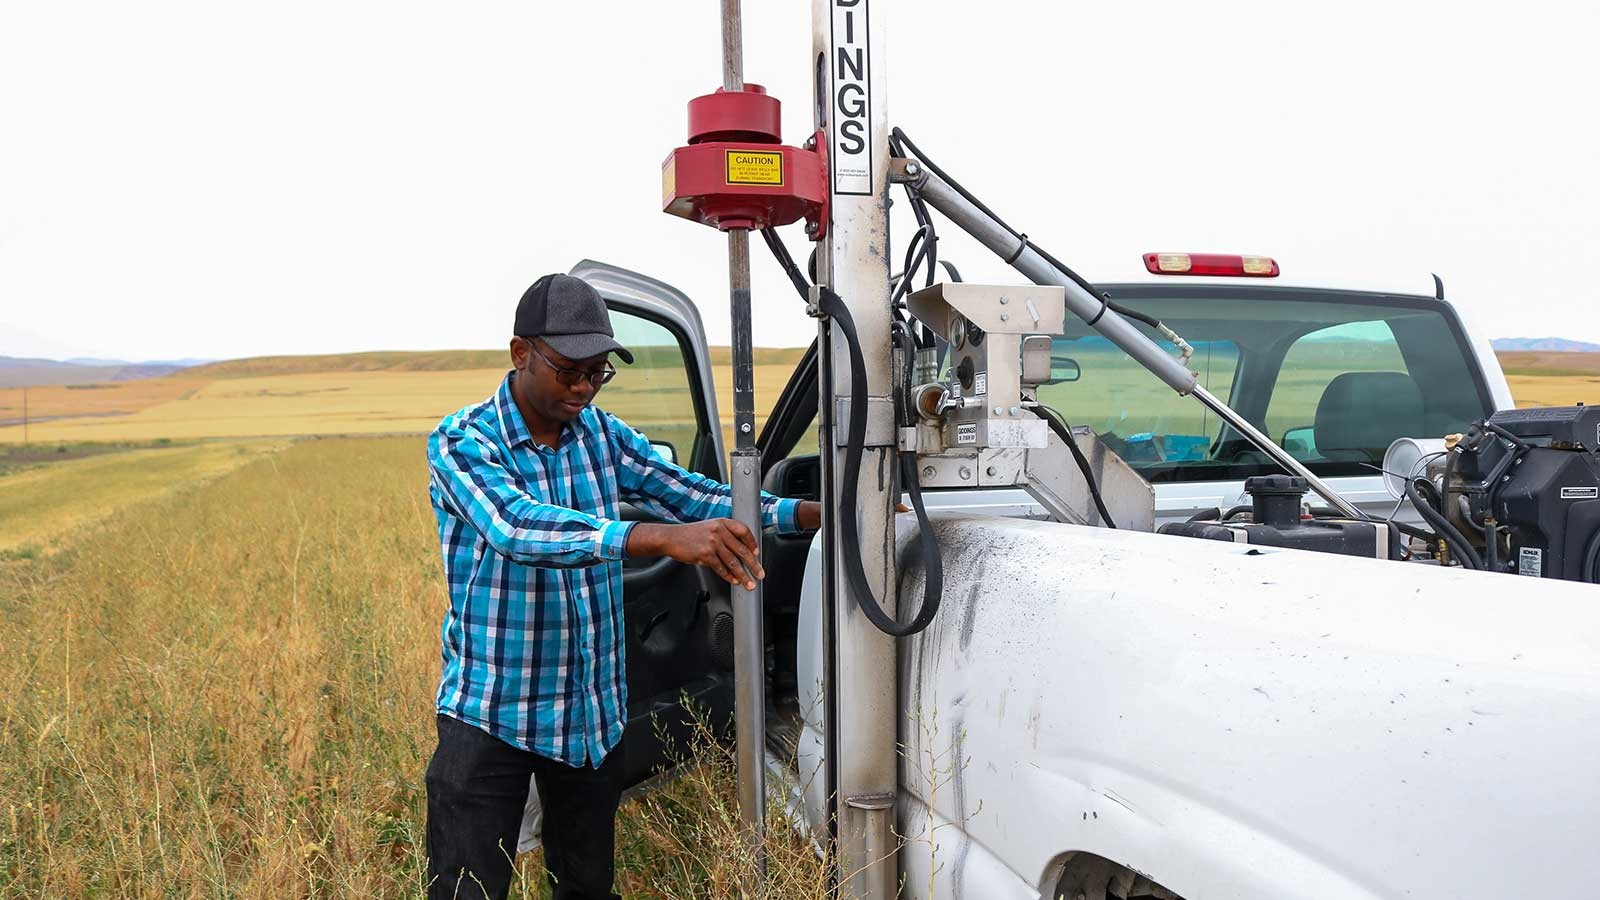 Idowu Atoloye looking over equipment while out in the field.